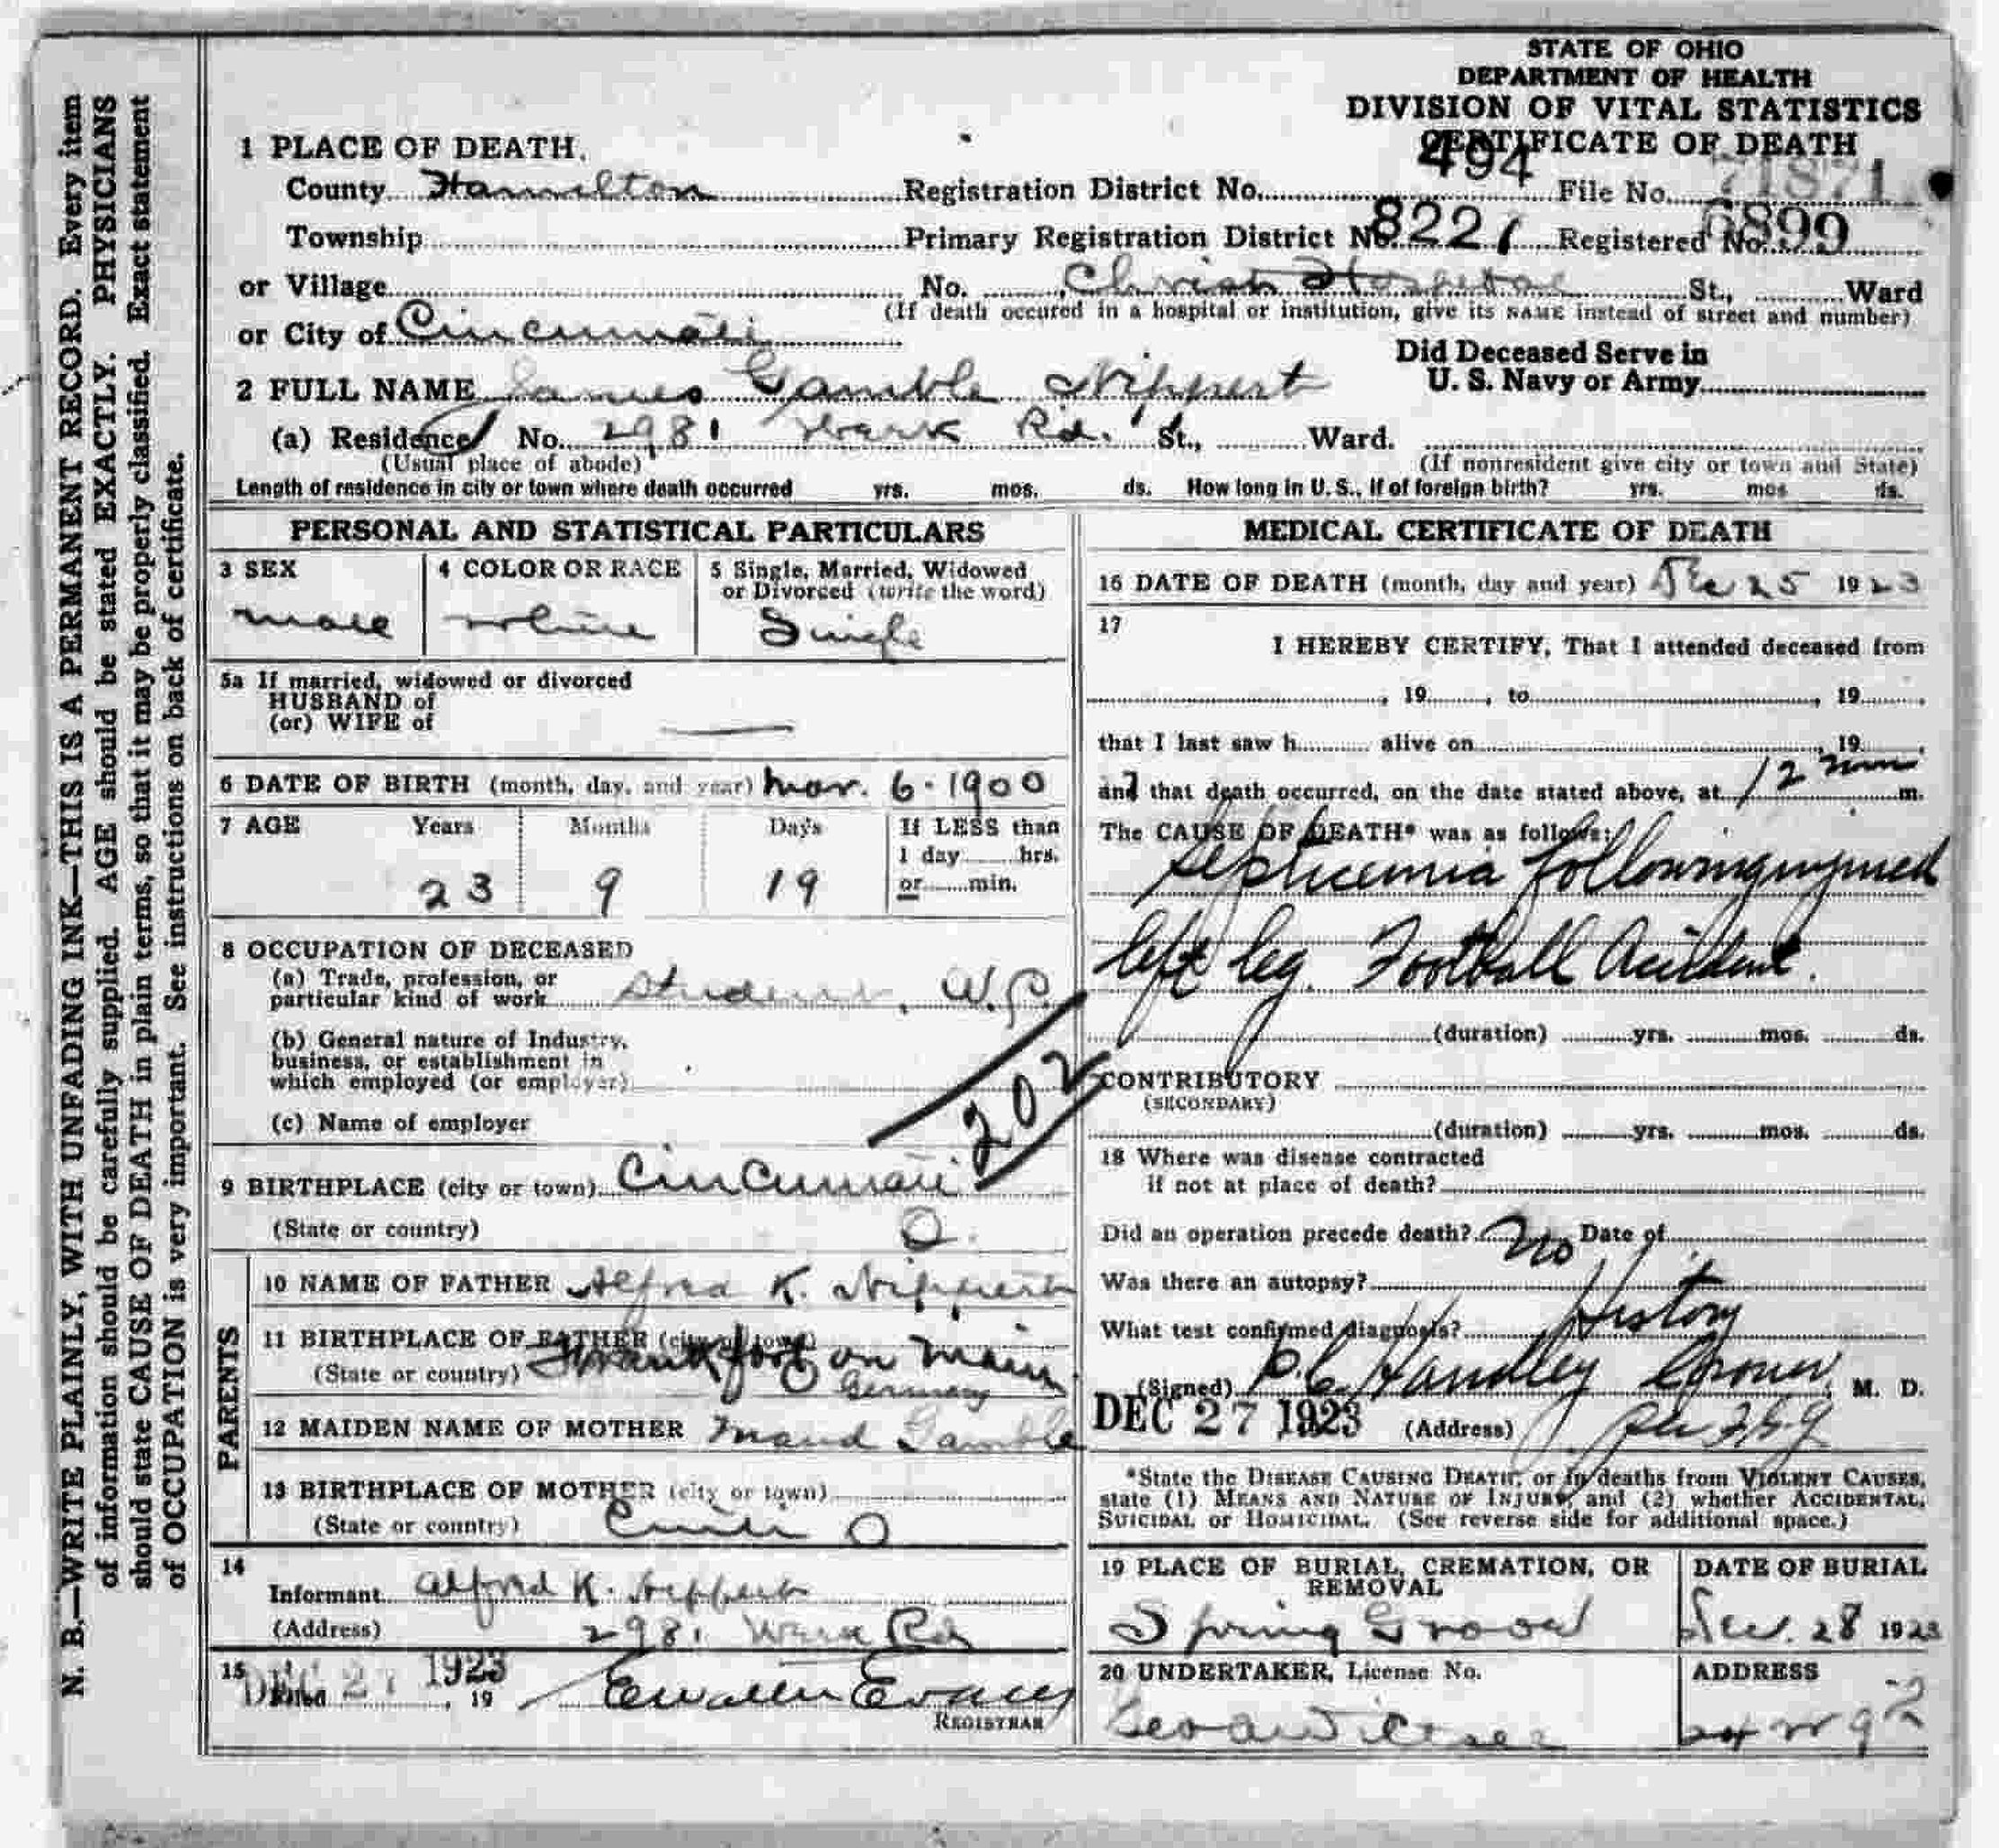 Nipperts birth record and death certificate university of cincinnati death certificate aiddatafo Gallery